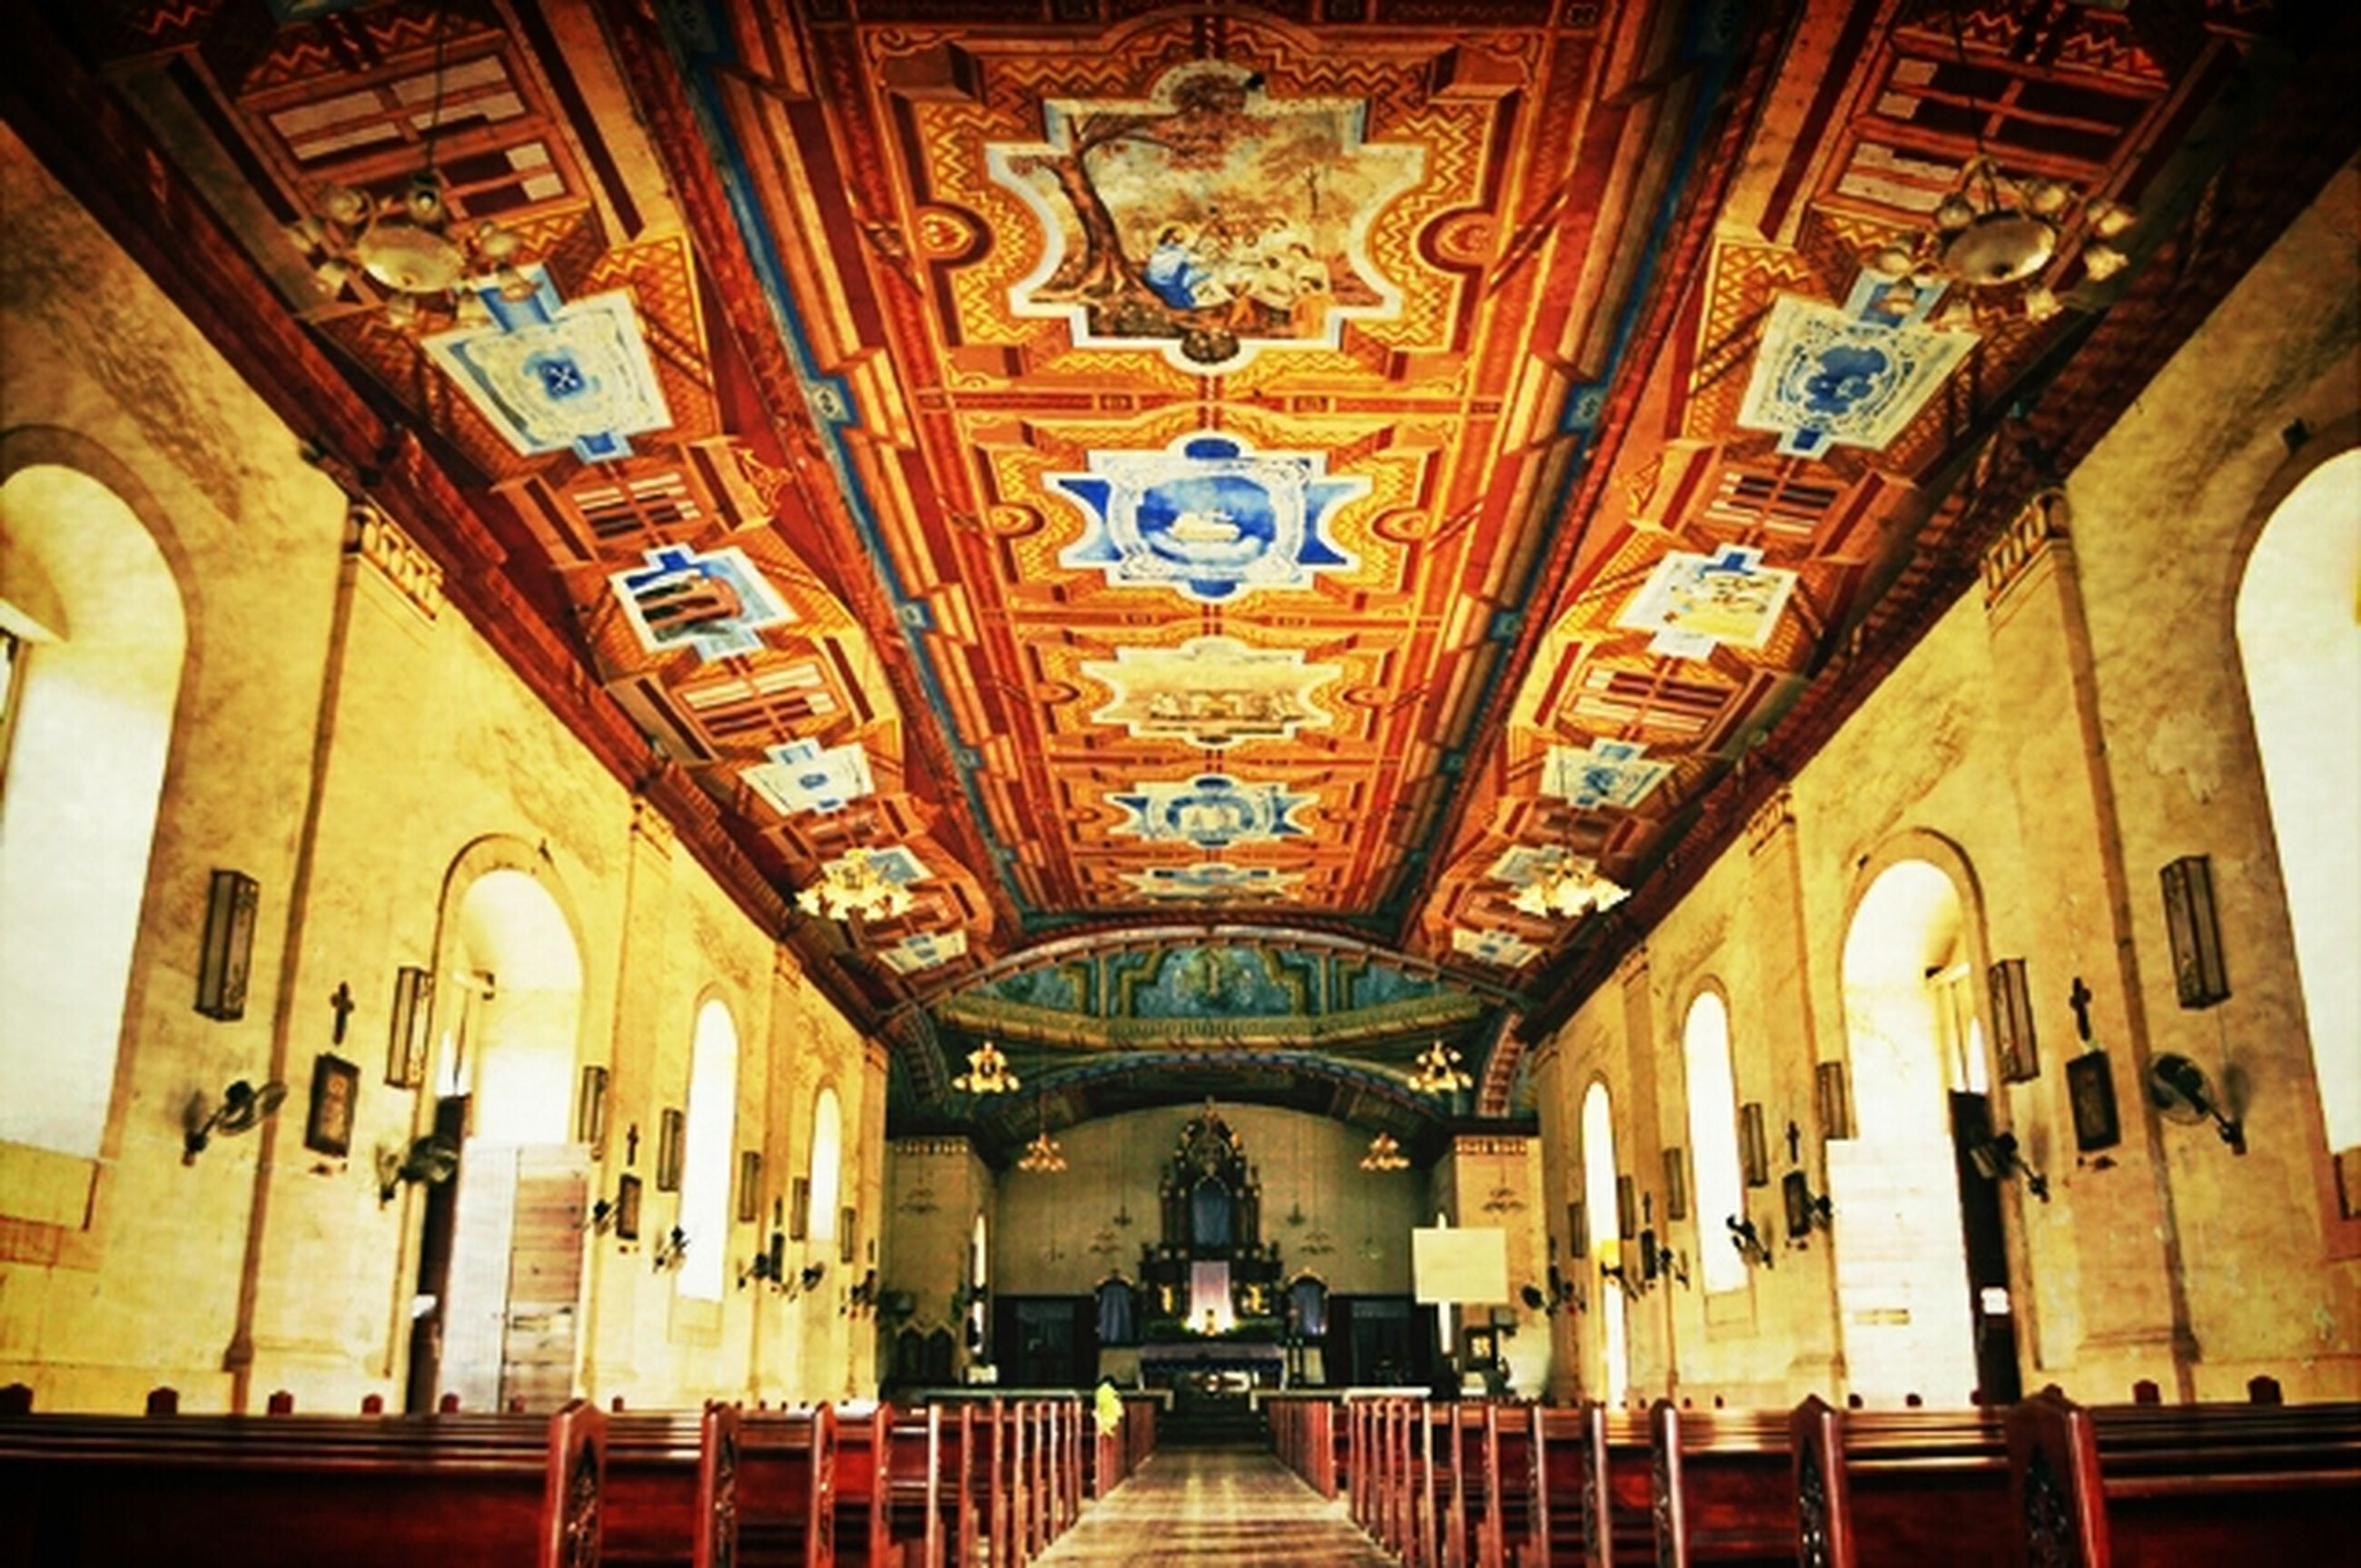 architecture, indoors, built structure, ceiling, arch, illuminated, low angle view, diminishing perspective, the way forward, ornate, architectural feature, design, interior, religion, place of worship, corridor, in a row, pattern, lighting equipment